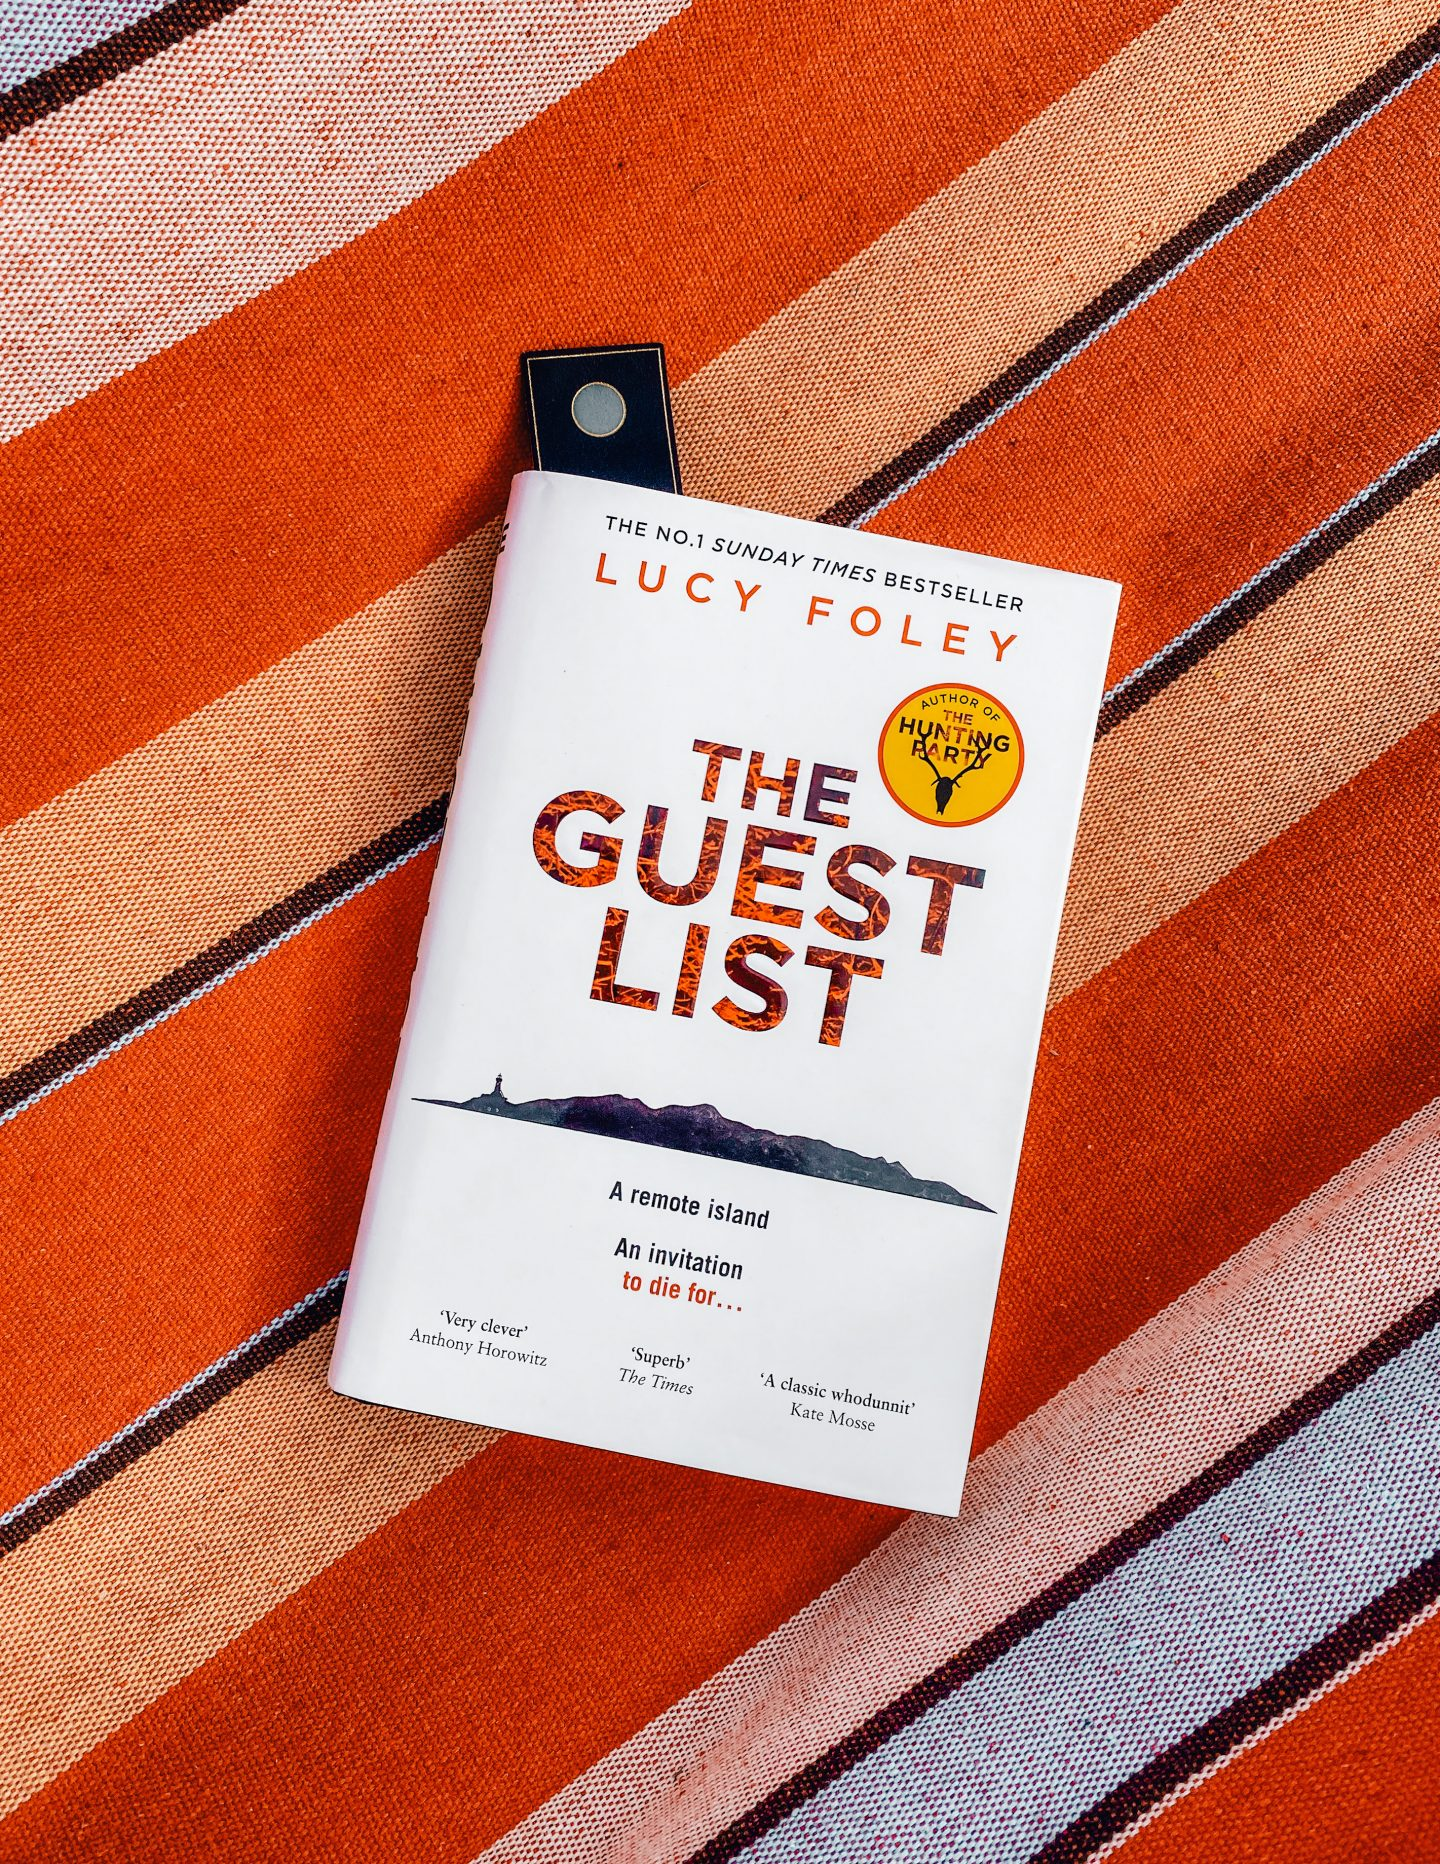 The Guest List book lays on an orange striped background